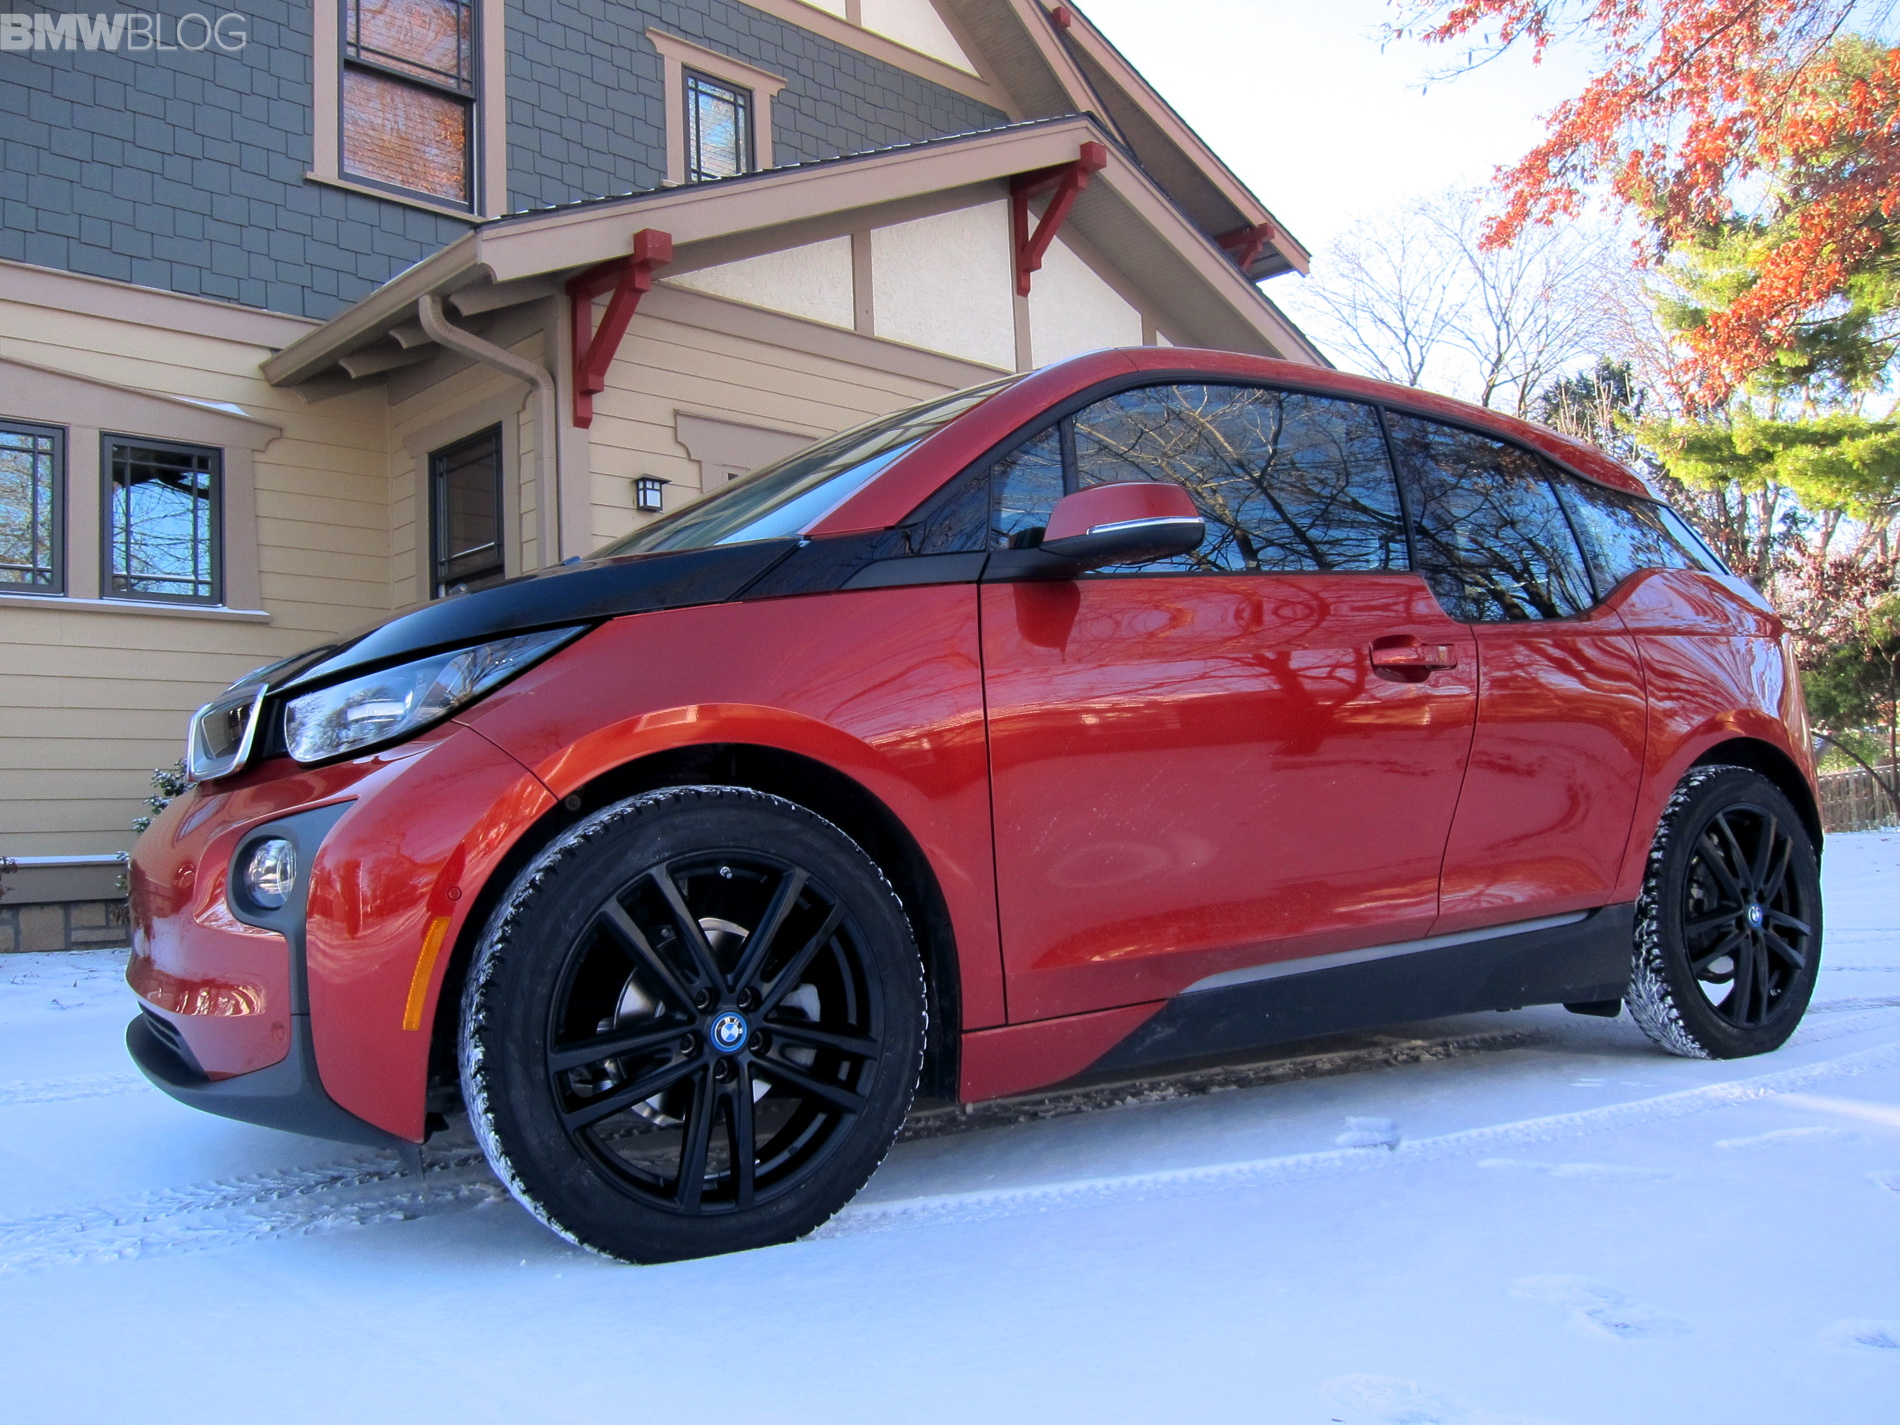 wheels review rial wheels for bmw i3. Black Bedroom Furniture Sets. Home Design Ideas